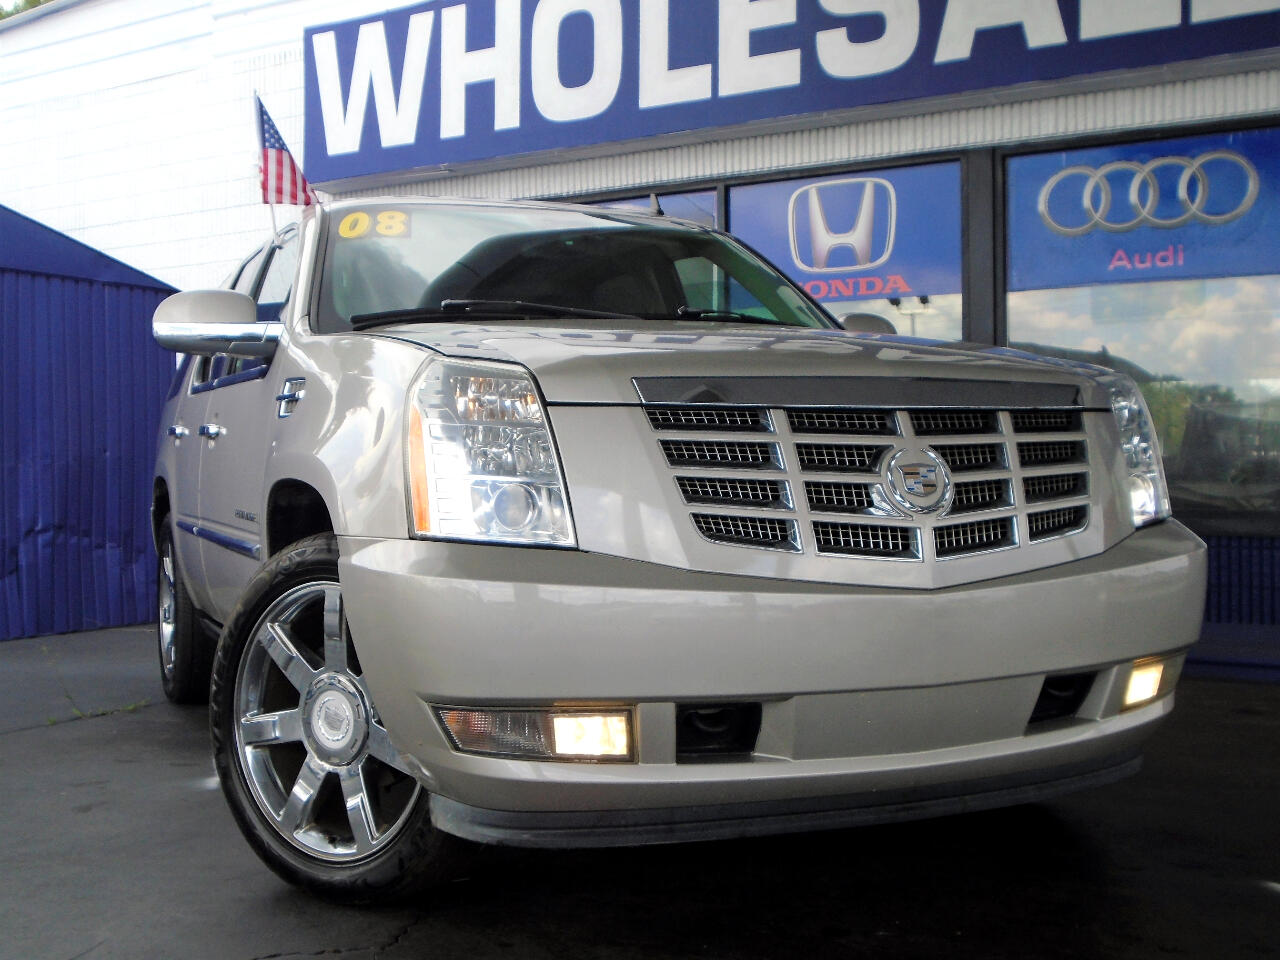 2008 Cadillac Escalade For Sale: Used 2008 Cadillac Escalade 2WD 4dr For Sale In Orlando FL